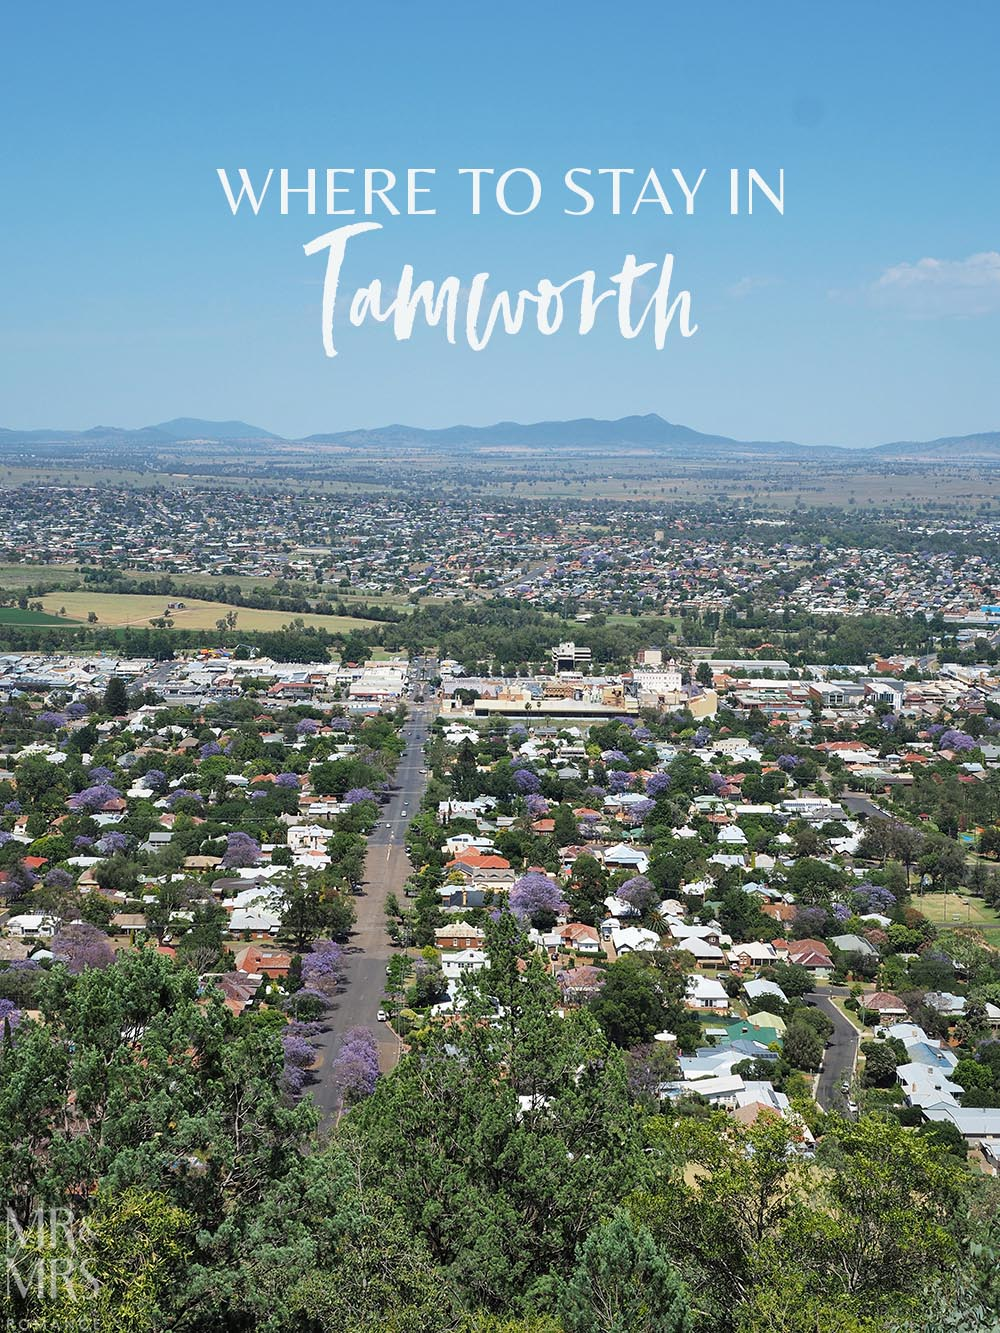 Where to stay in Tamworth NSW - Powerhouse Hotel Tamworth by Rydges